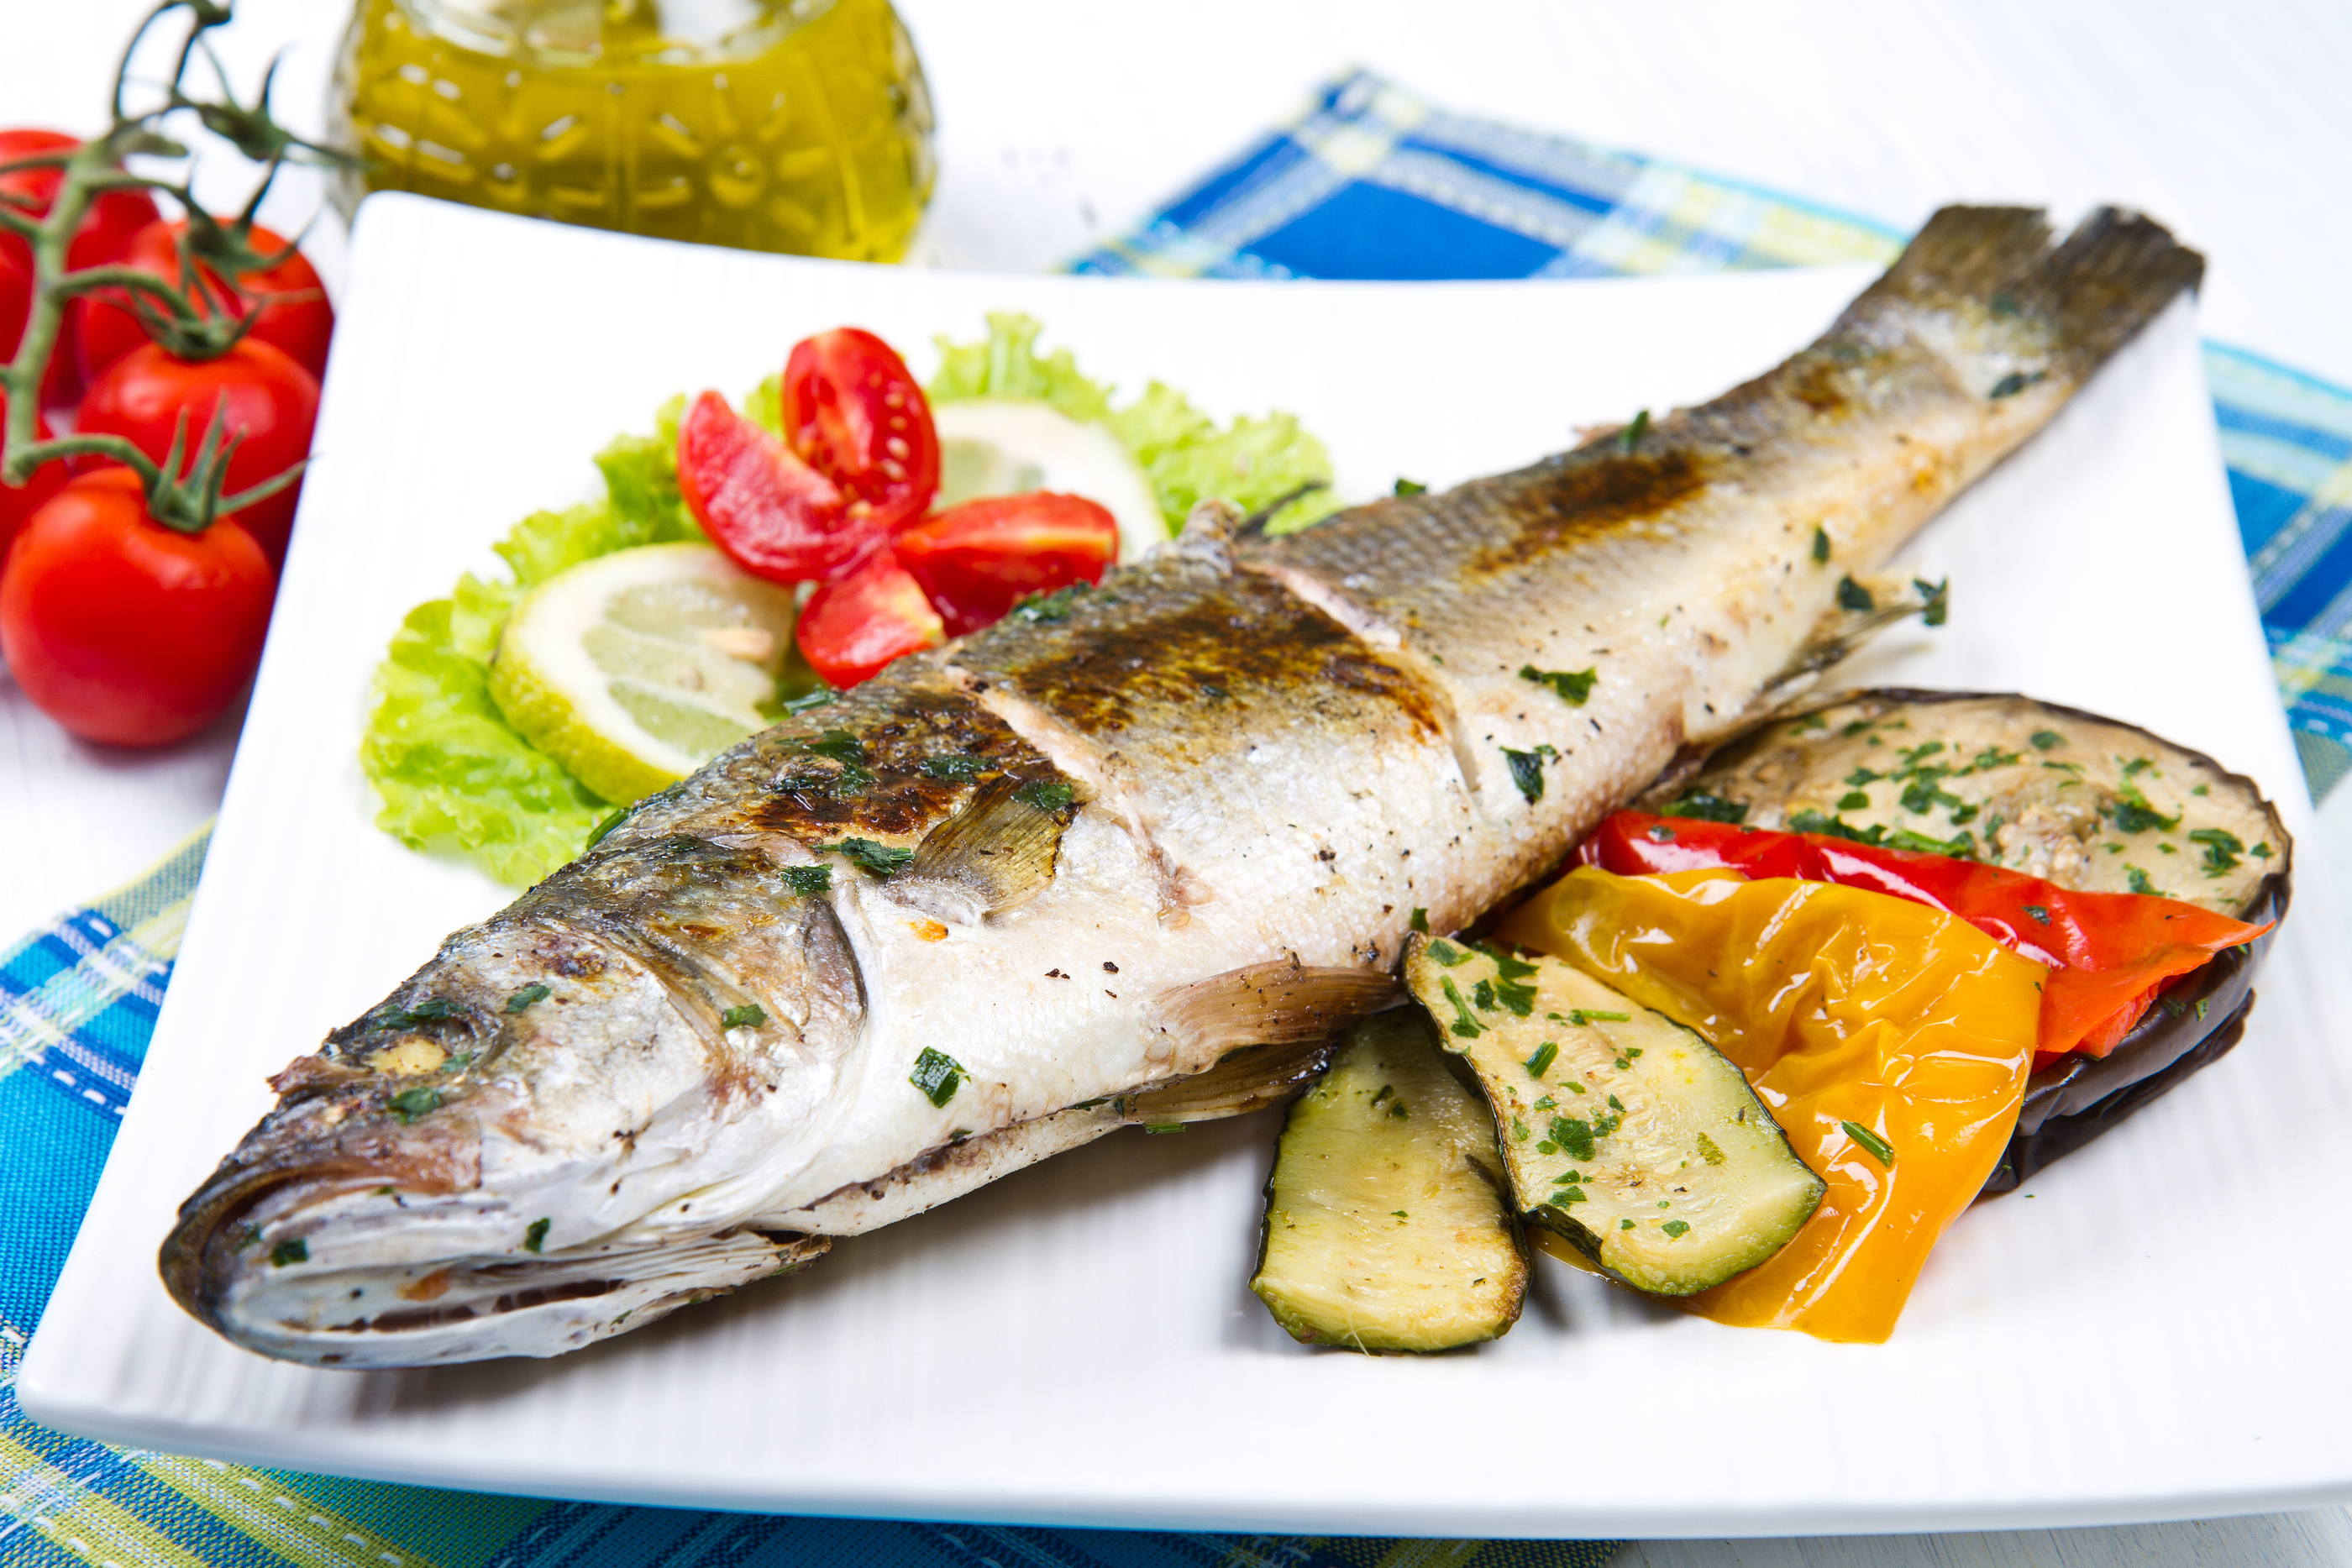 Fish, Sea Bass Grilled With Lemon And Grilled Vegetables.jpg